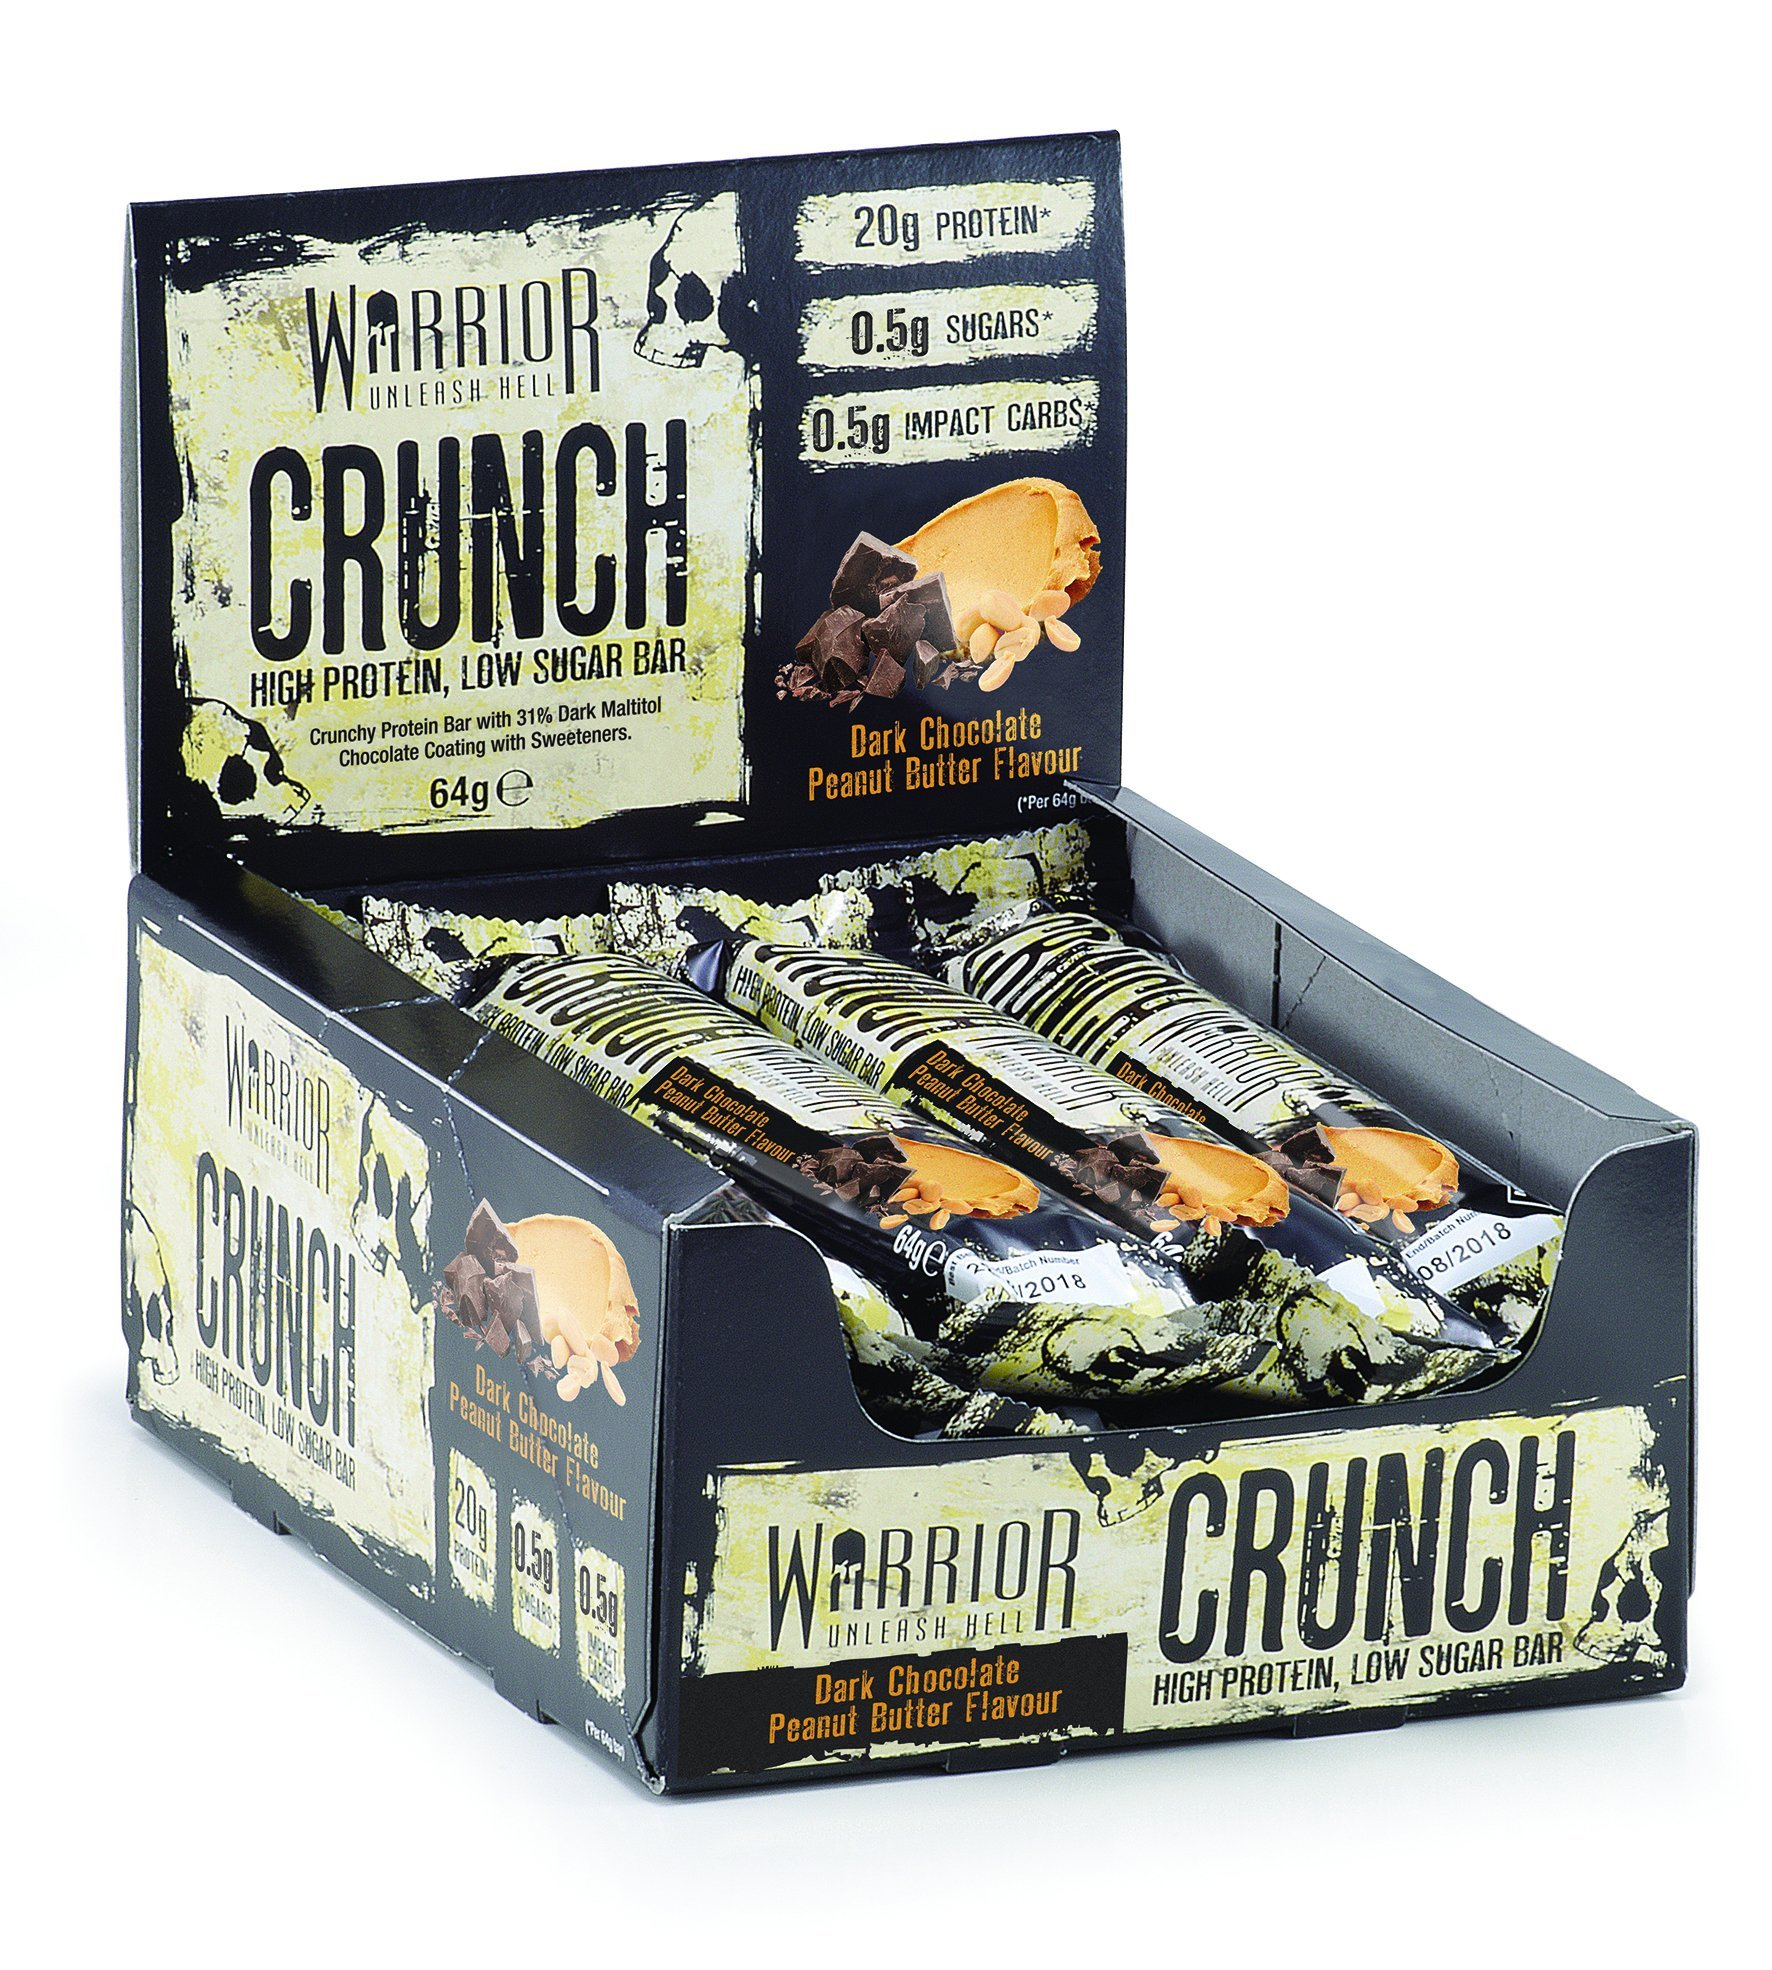 Warrior Crunch Protein Bar - High Protein Snack - Dark Chocolate Peanut Butter - 12x64g Bars 1